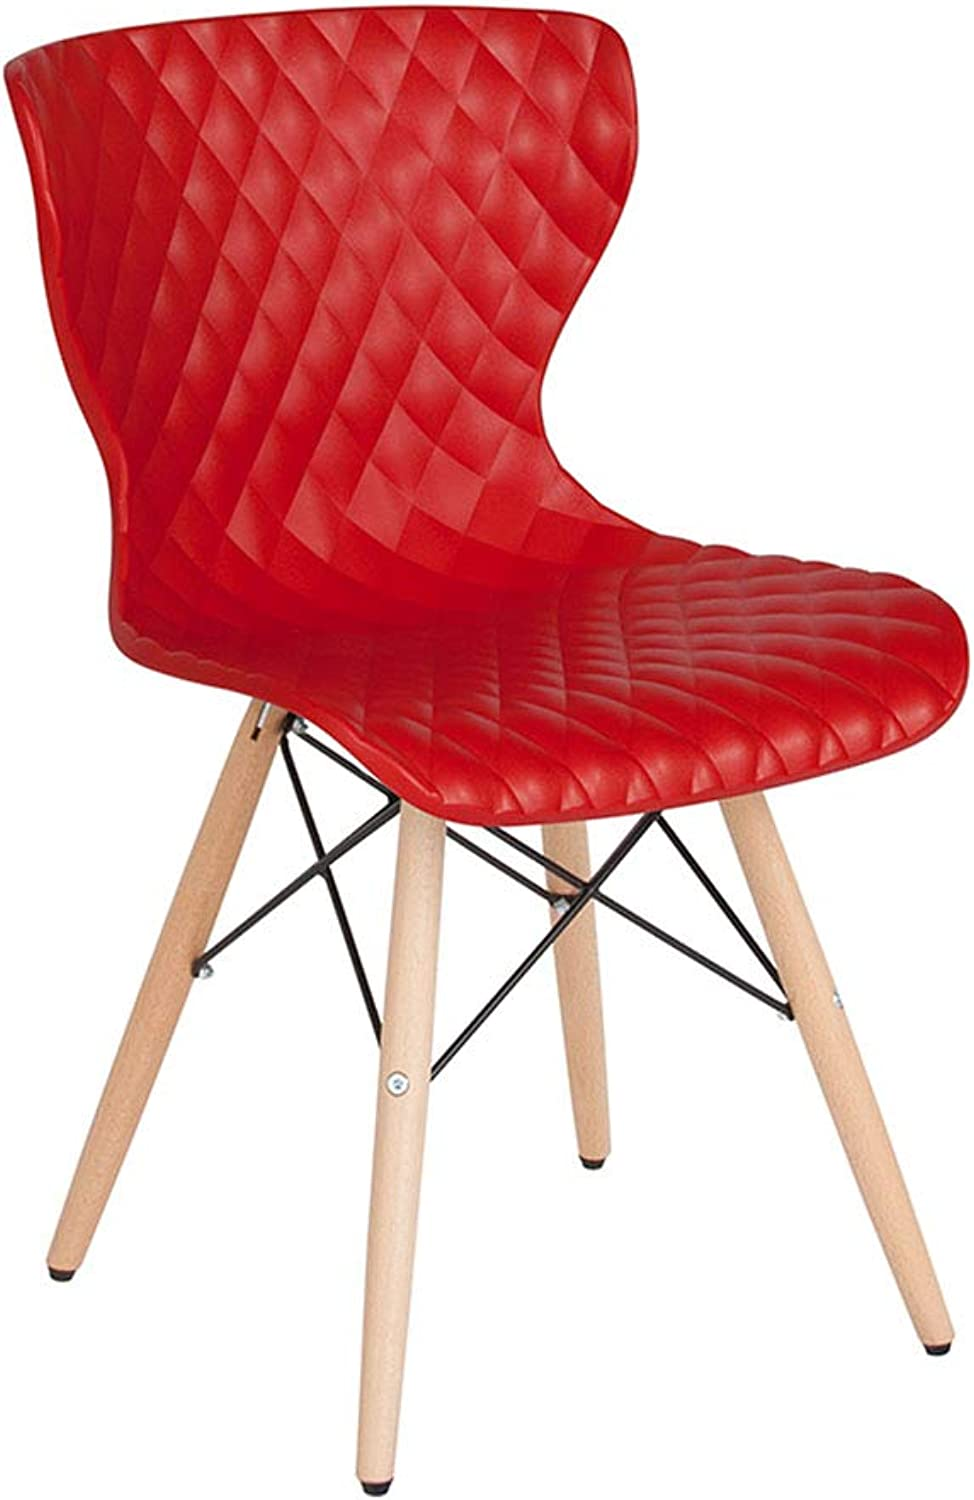 Offex Contemporary Plastic Accent Side Chair with Wooden Legs, Red